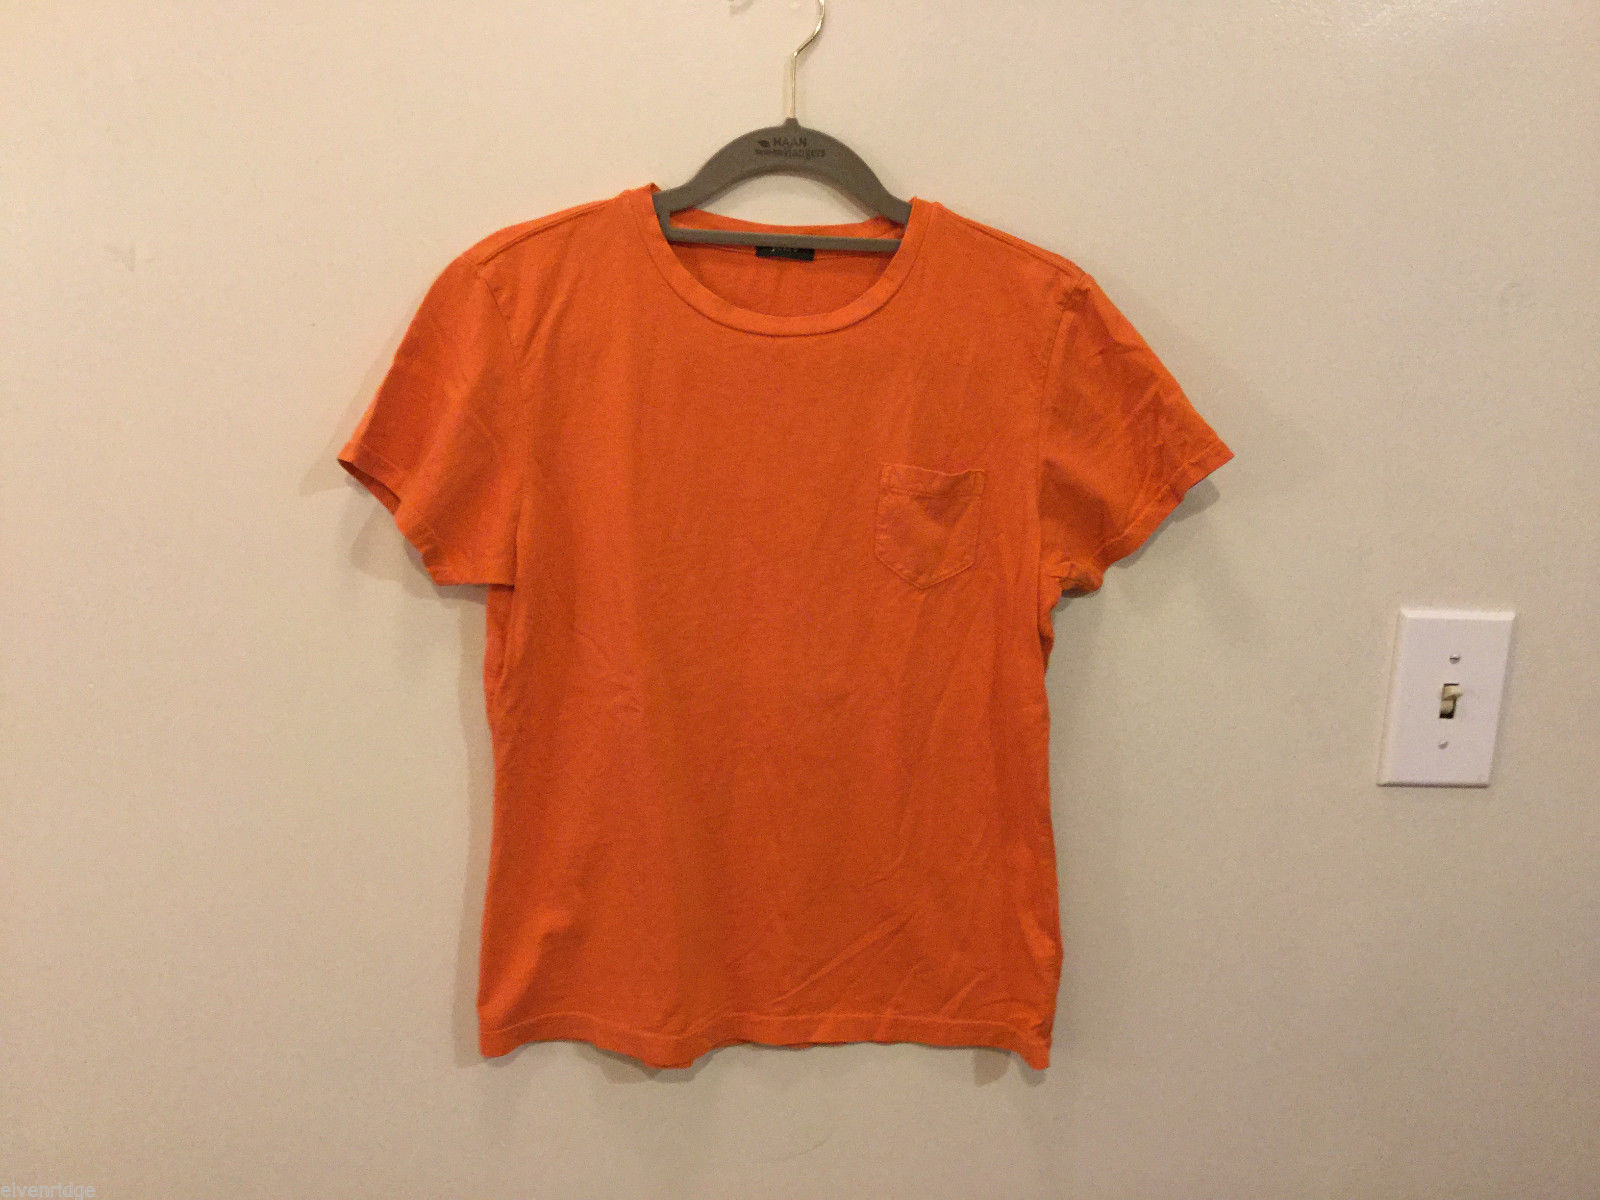 J.Crew Bright Orange T-Shirt Top with one pocket, NO Size tag (see measures)